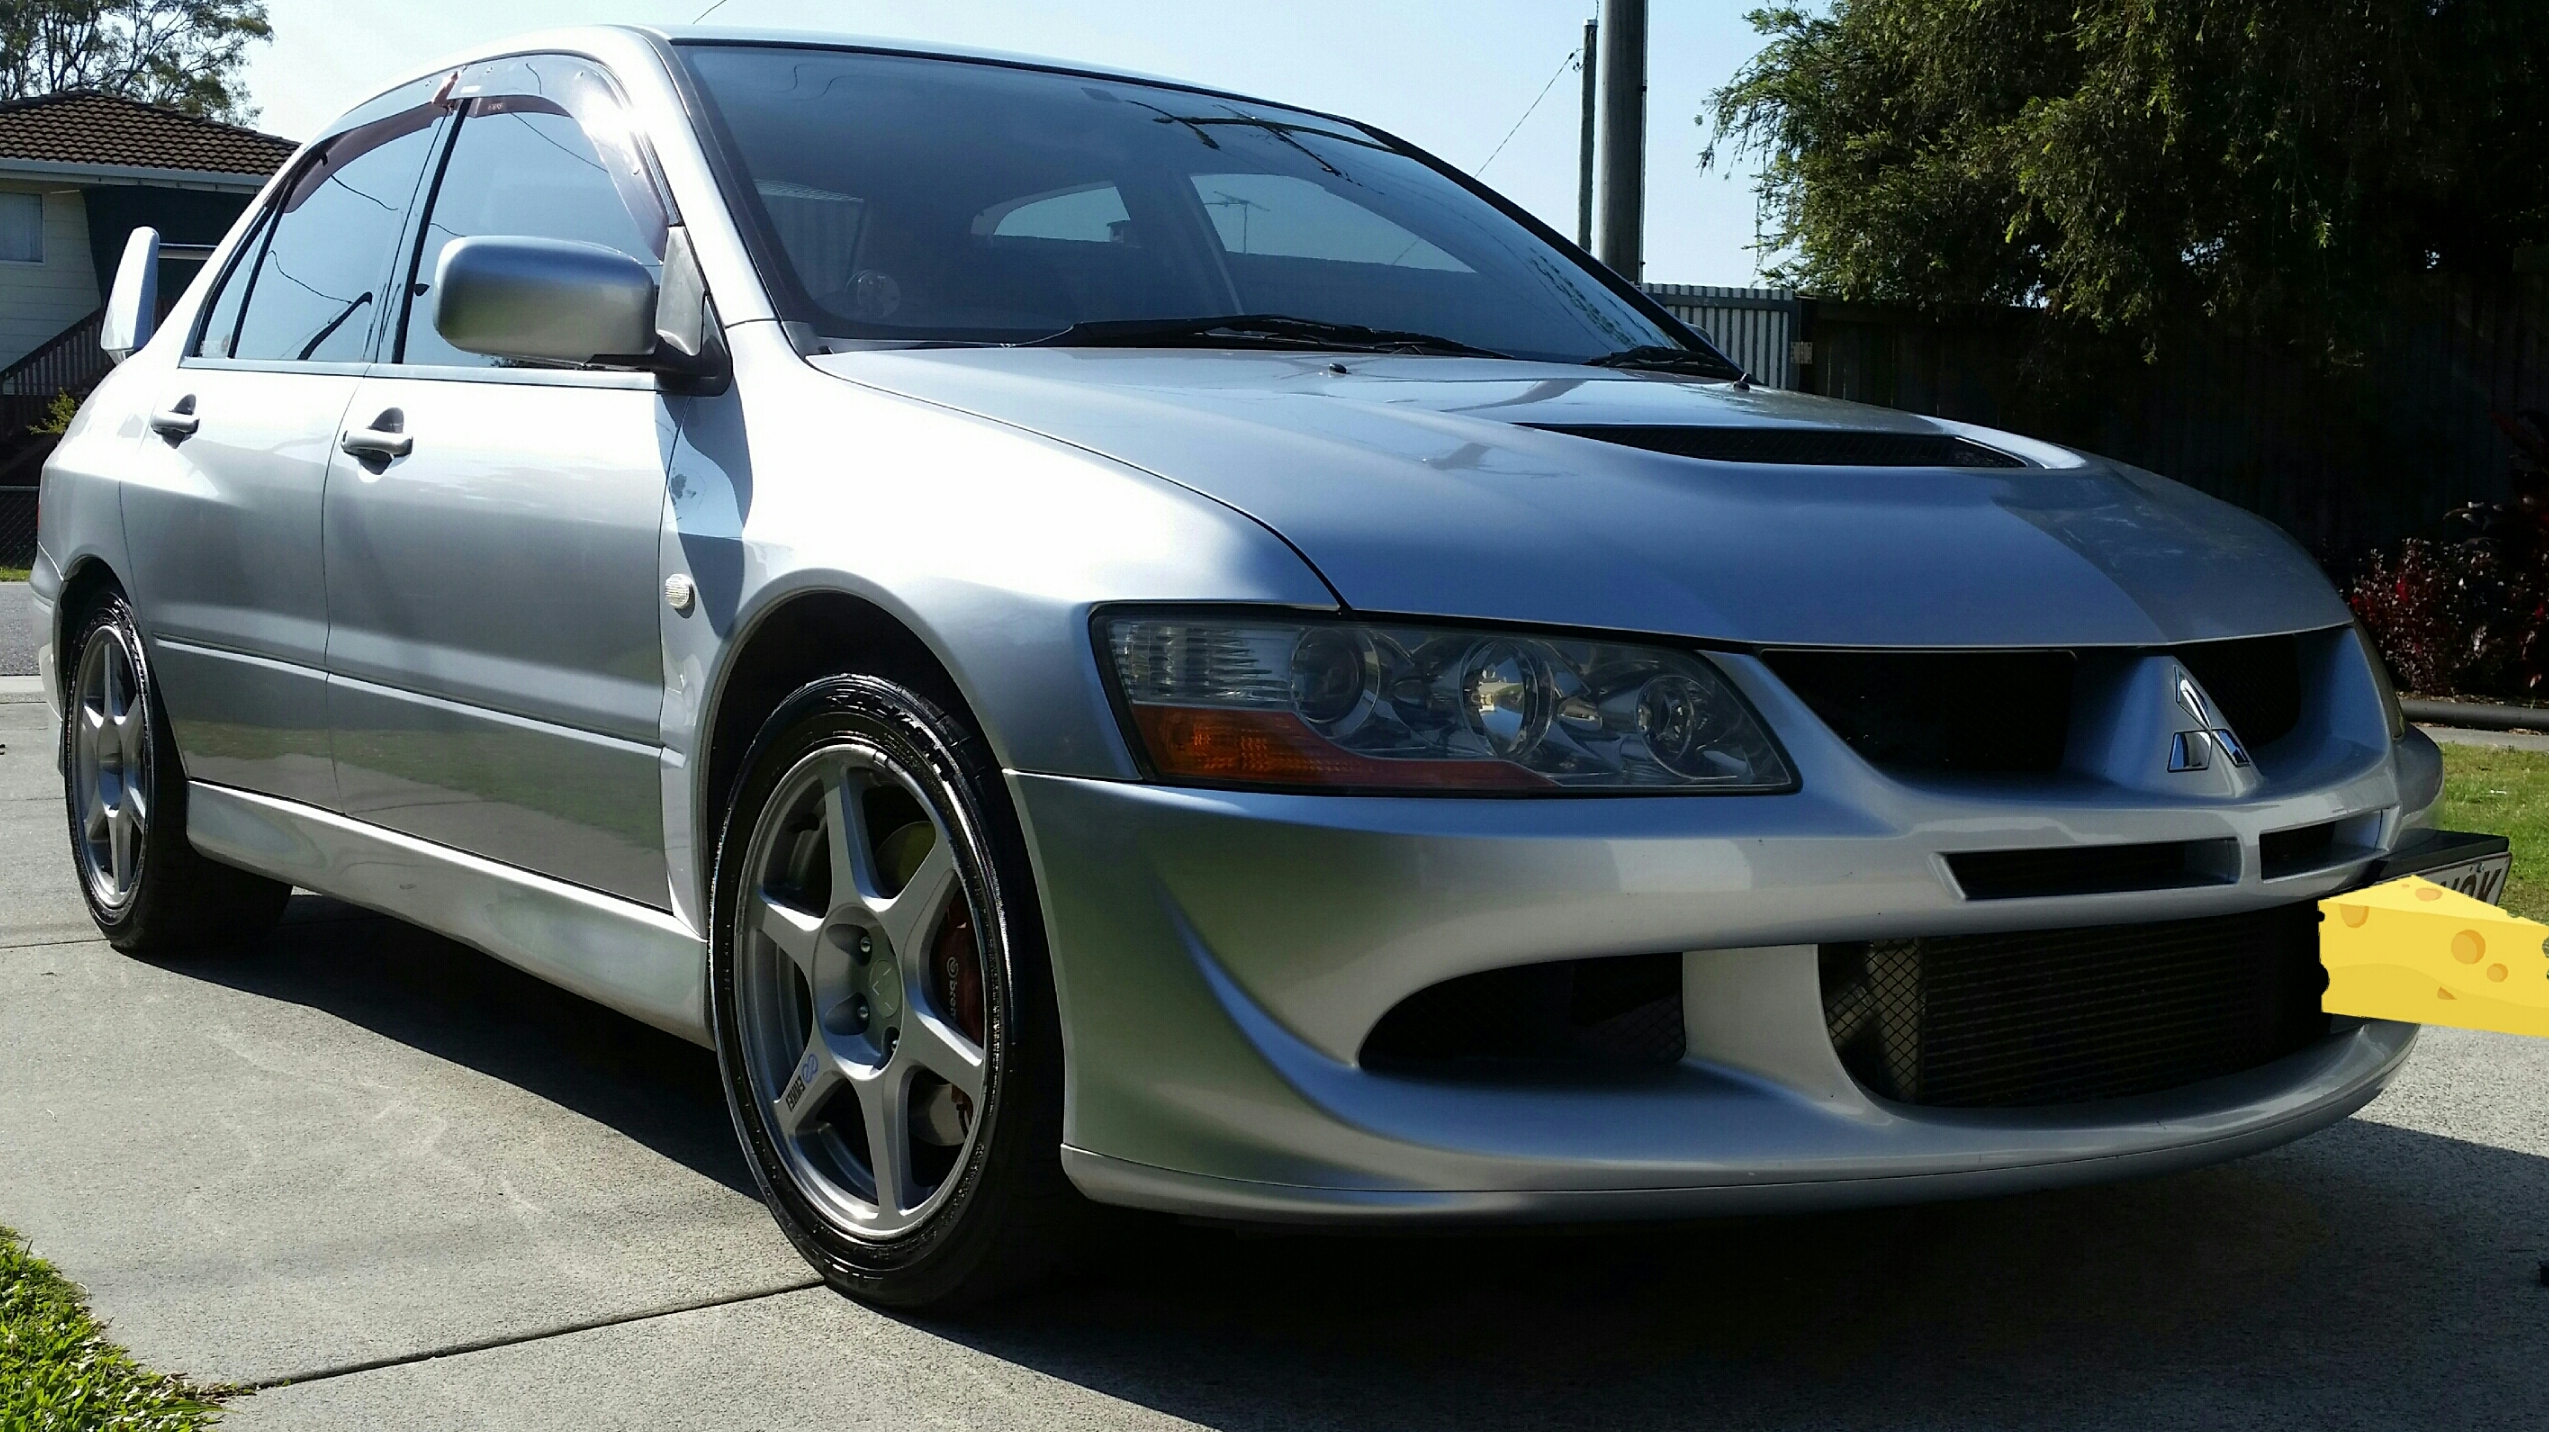 2003 mitsubishi lancer ralliart evolution viii cz car. Black Bedroom Furniture Sets. Home Design Ideas